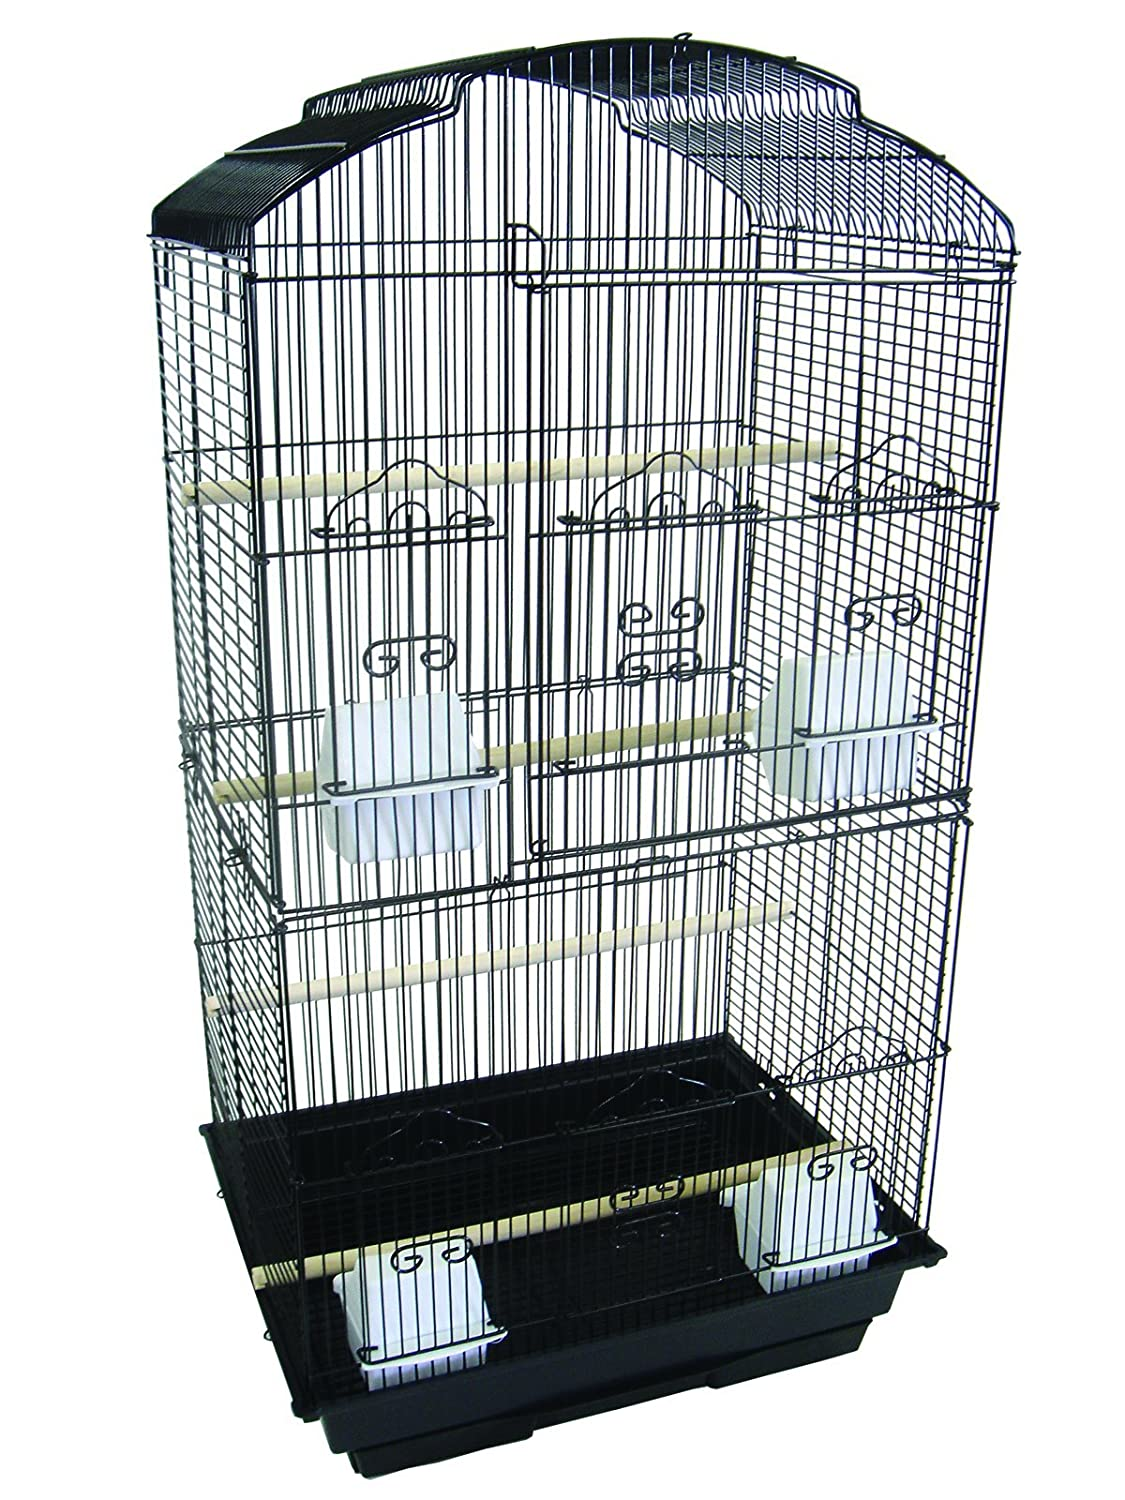 YML A6804 3/8-Inch Bar Spacing Tall Shall Top Small Bird Cage, 18-Inch by 14-Inch, White A6804WHT